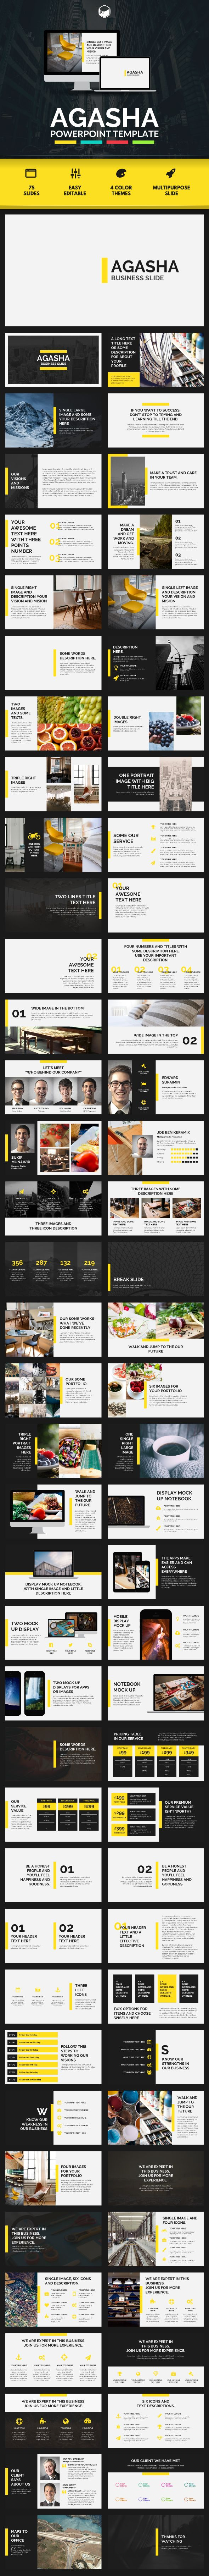 Best 25 Power point templates ideas – Powerpoint Proposal Template